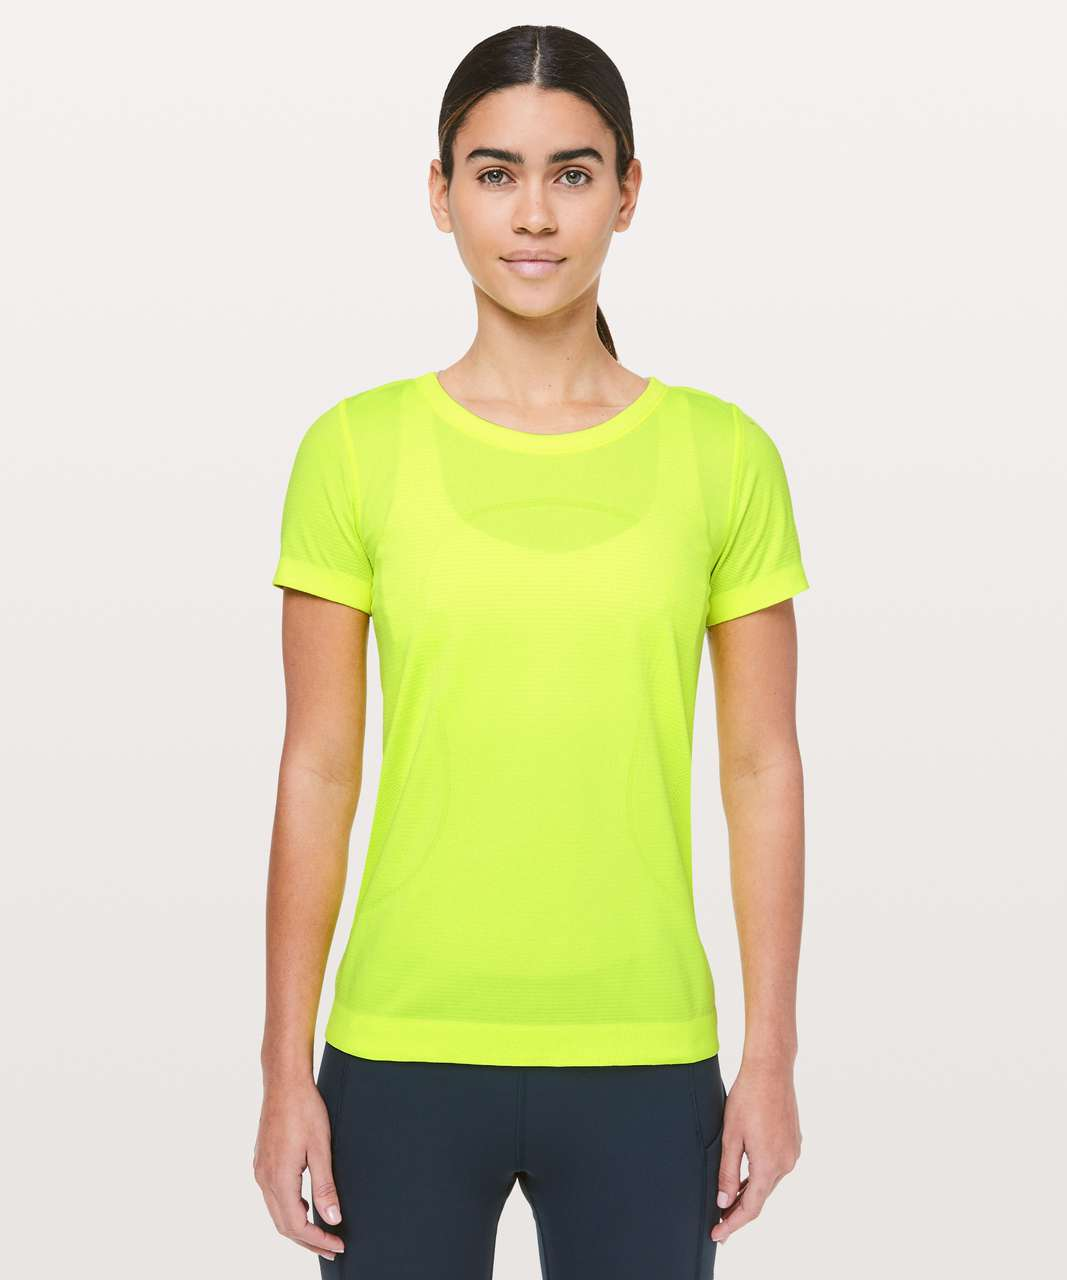 Lululemon Swiftly Tech Short Sleeve (Breeze) *Relaxed Fit - Ray / Ray